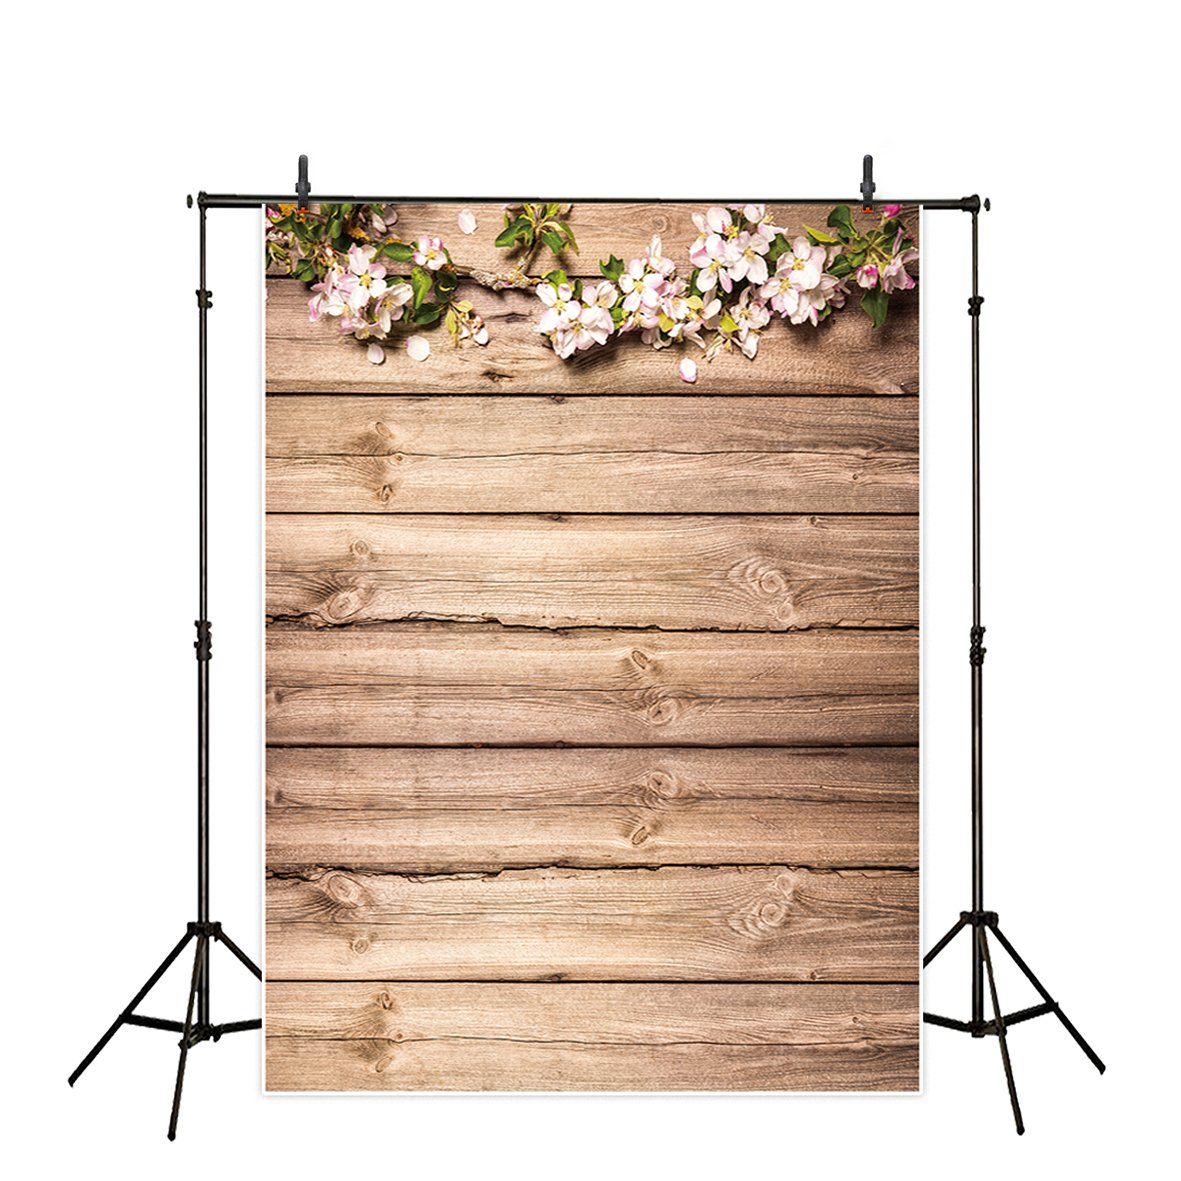 Allenjoy 5x7ft Thin Vinyl Wood Backdrop Antique Wooden Plank Board Floral Branch and Petals Background for Photography or Decoration